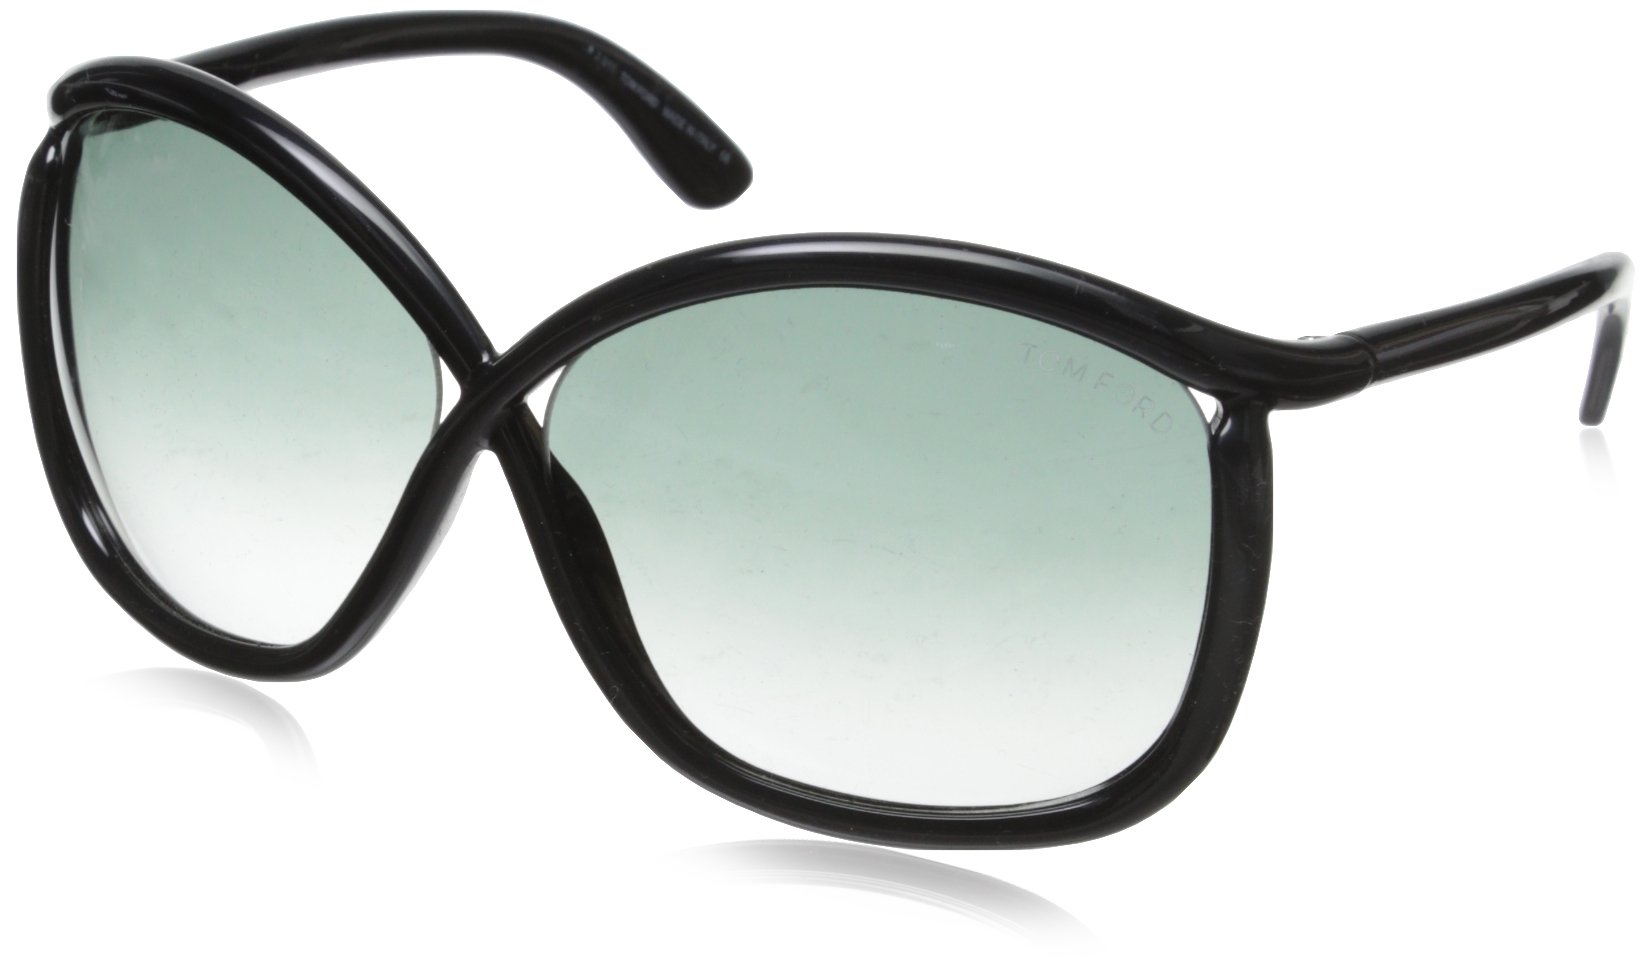 Tom Ford Charlie FT0201 Sunglasses-01B Black (Gray Gradient Lens)-64mm